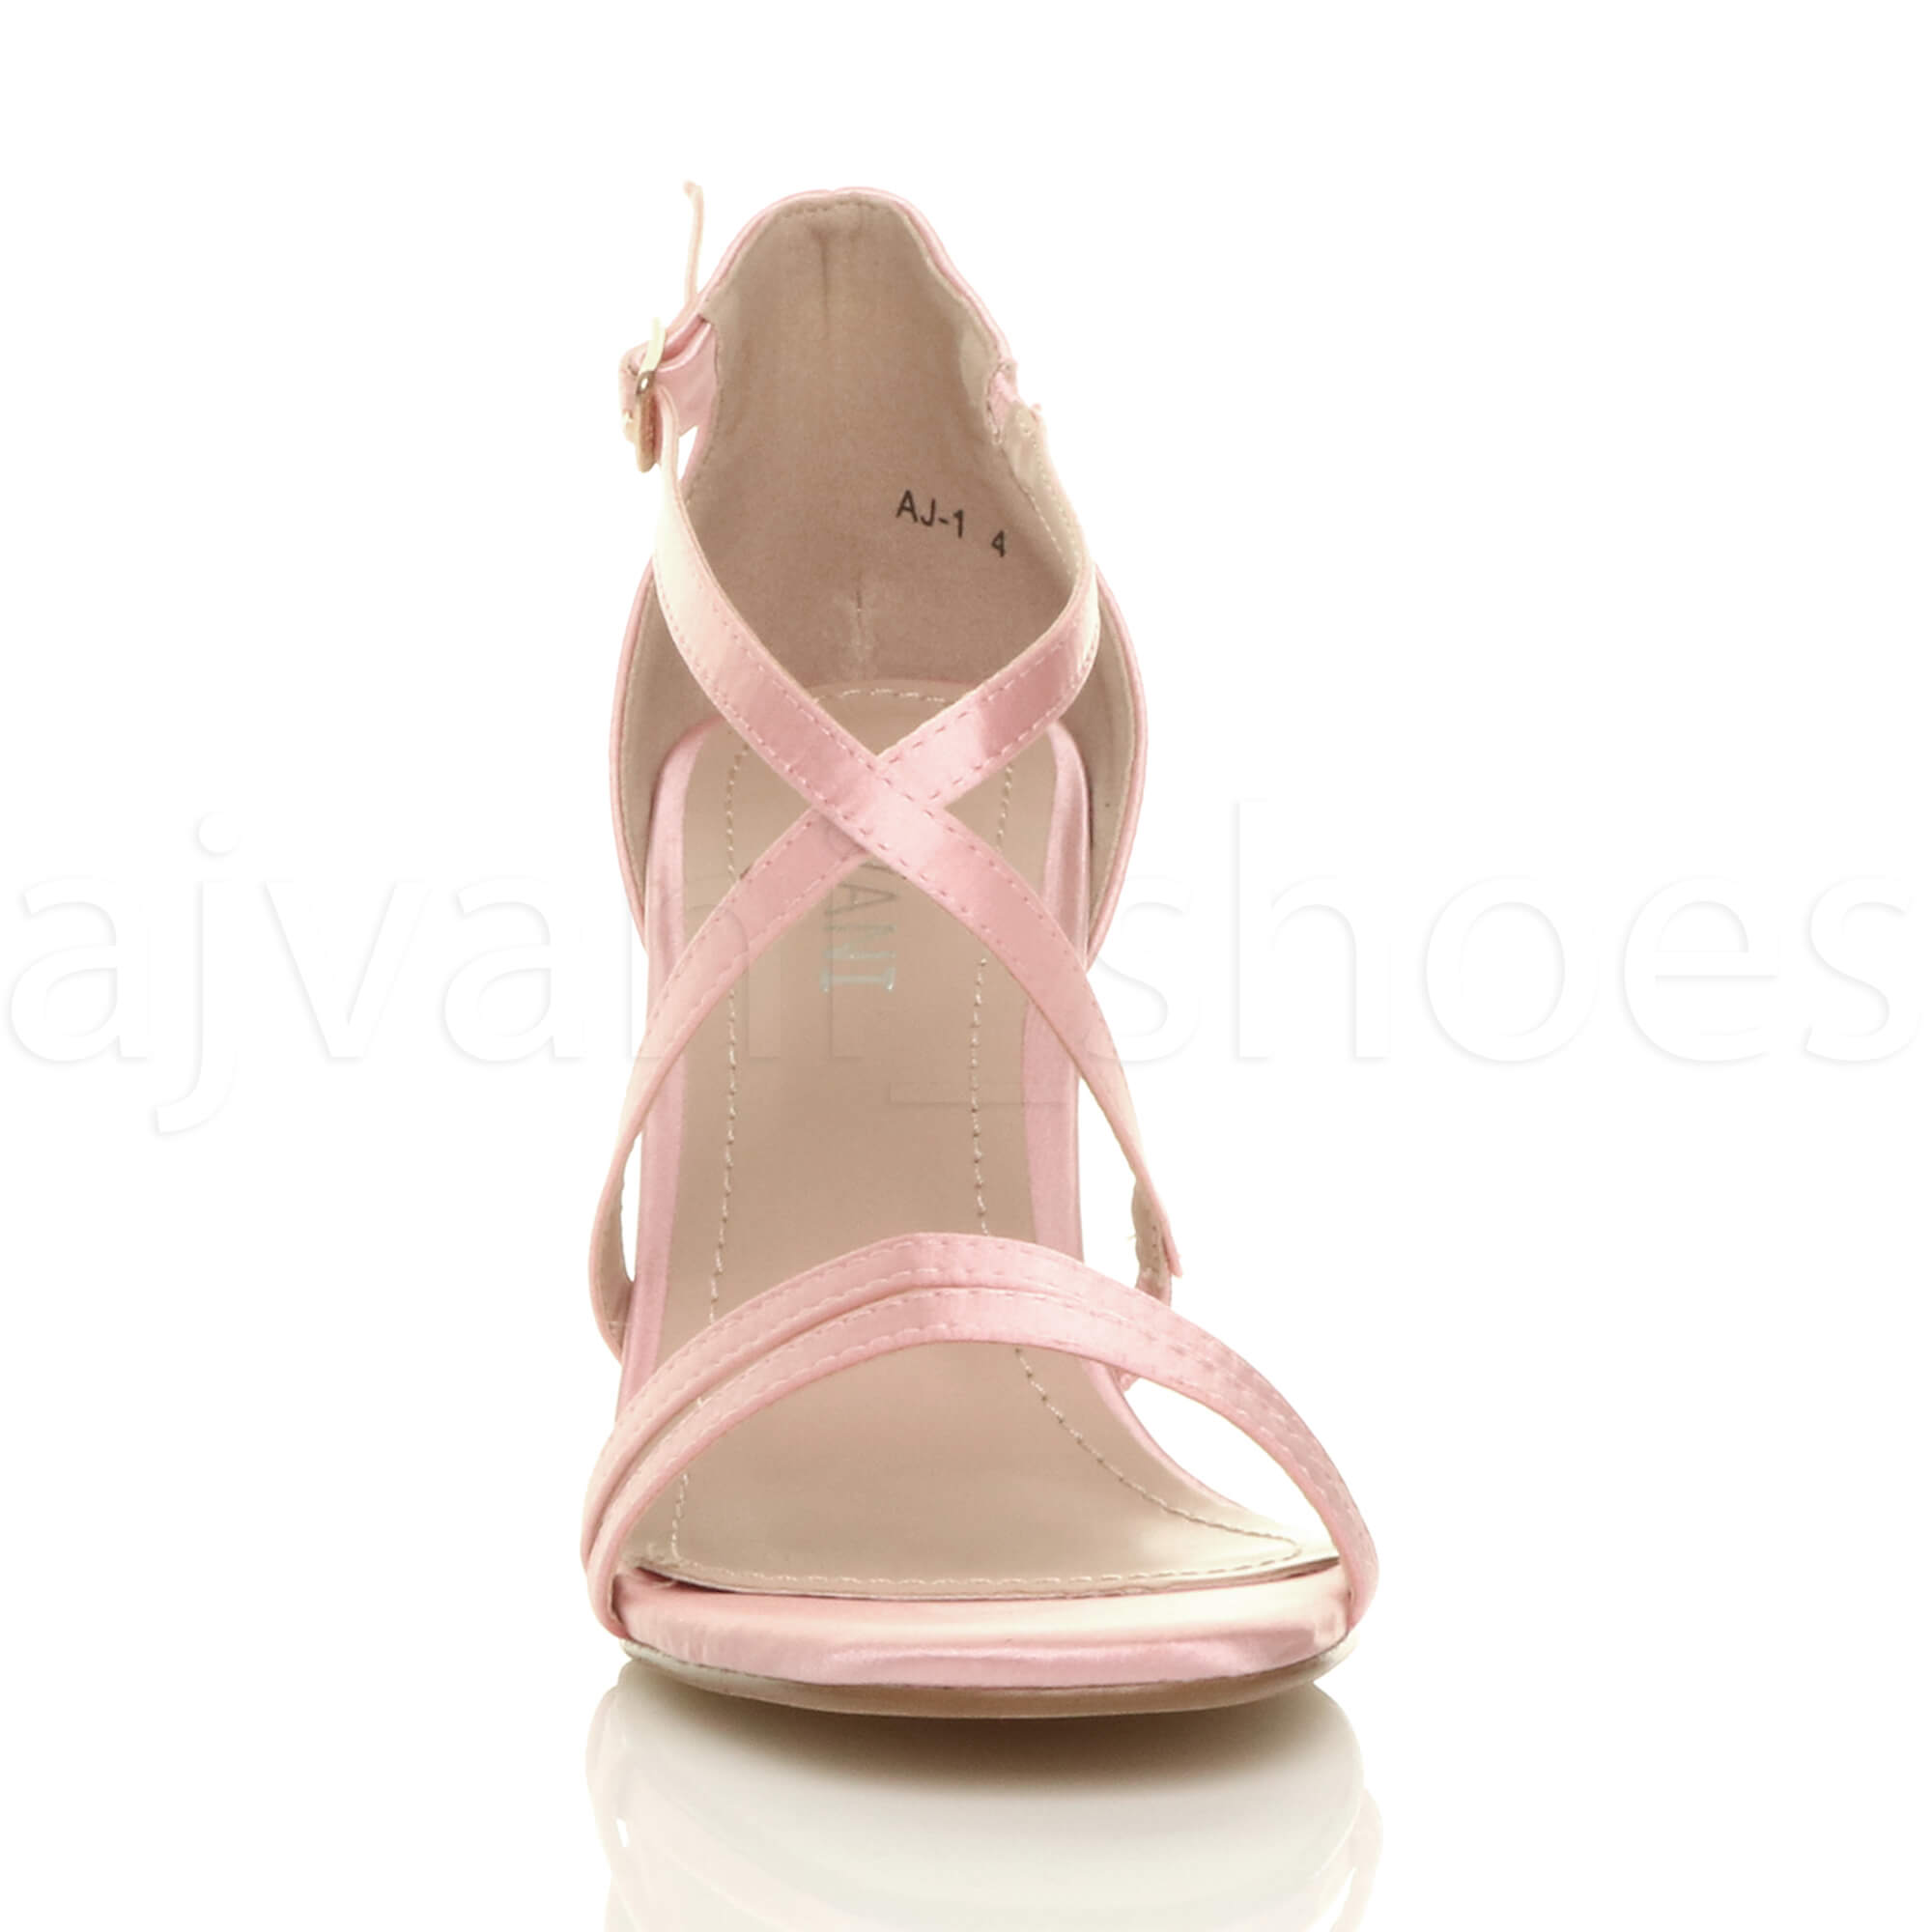 WOMENS-LADIES-MID-HIGH-HEEL-STRAPPY-CROSSOVER-WEDDING-PROM-SANDALS-SHOES-SIZE thumbnail 6